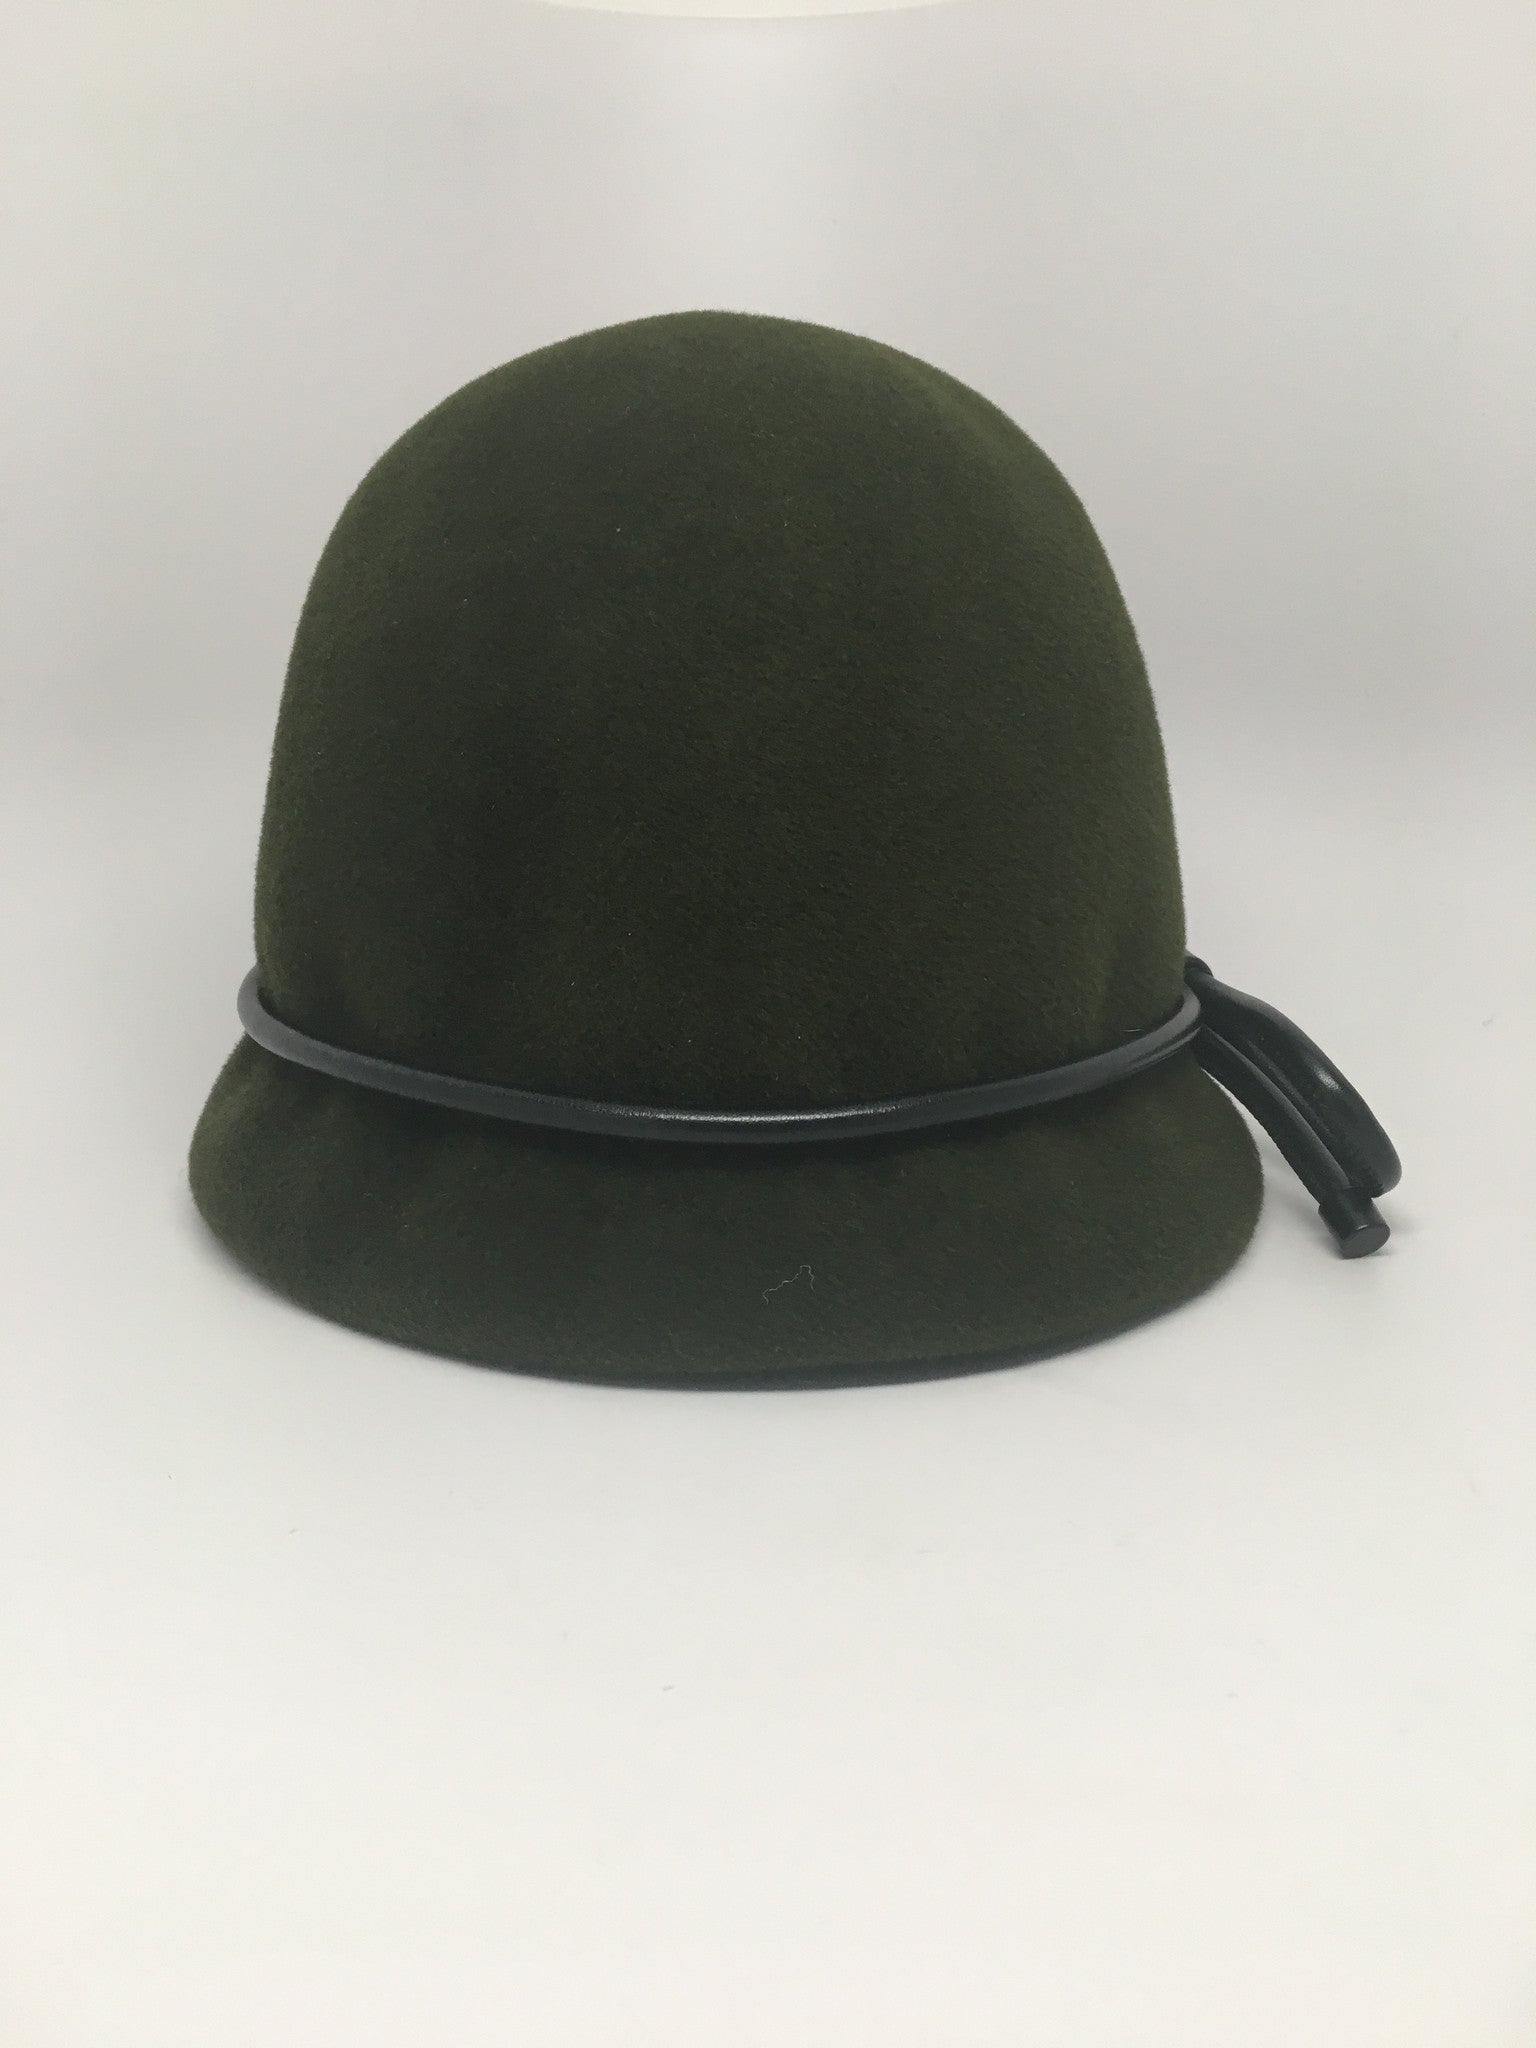 BURBERRY PRORSUM LEATHER TRIMMED CLOCHE HAT - OLIVE GREEN - SIZE M/L